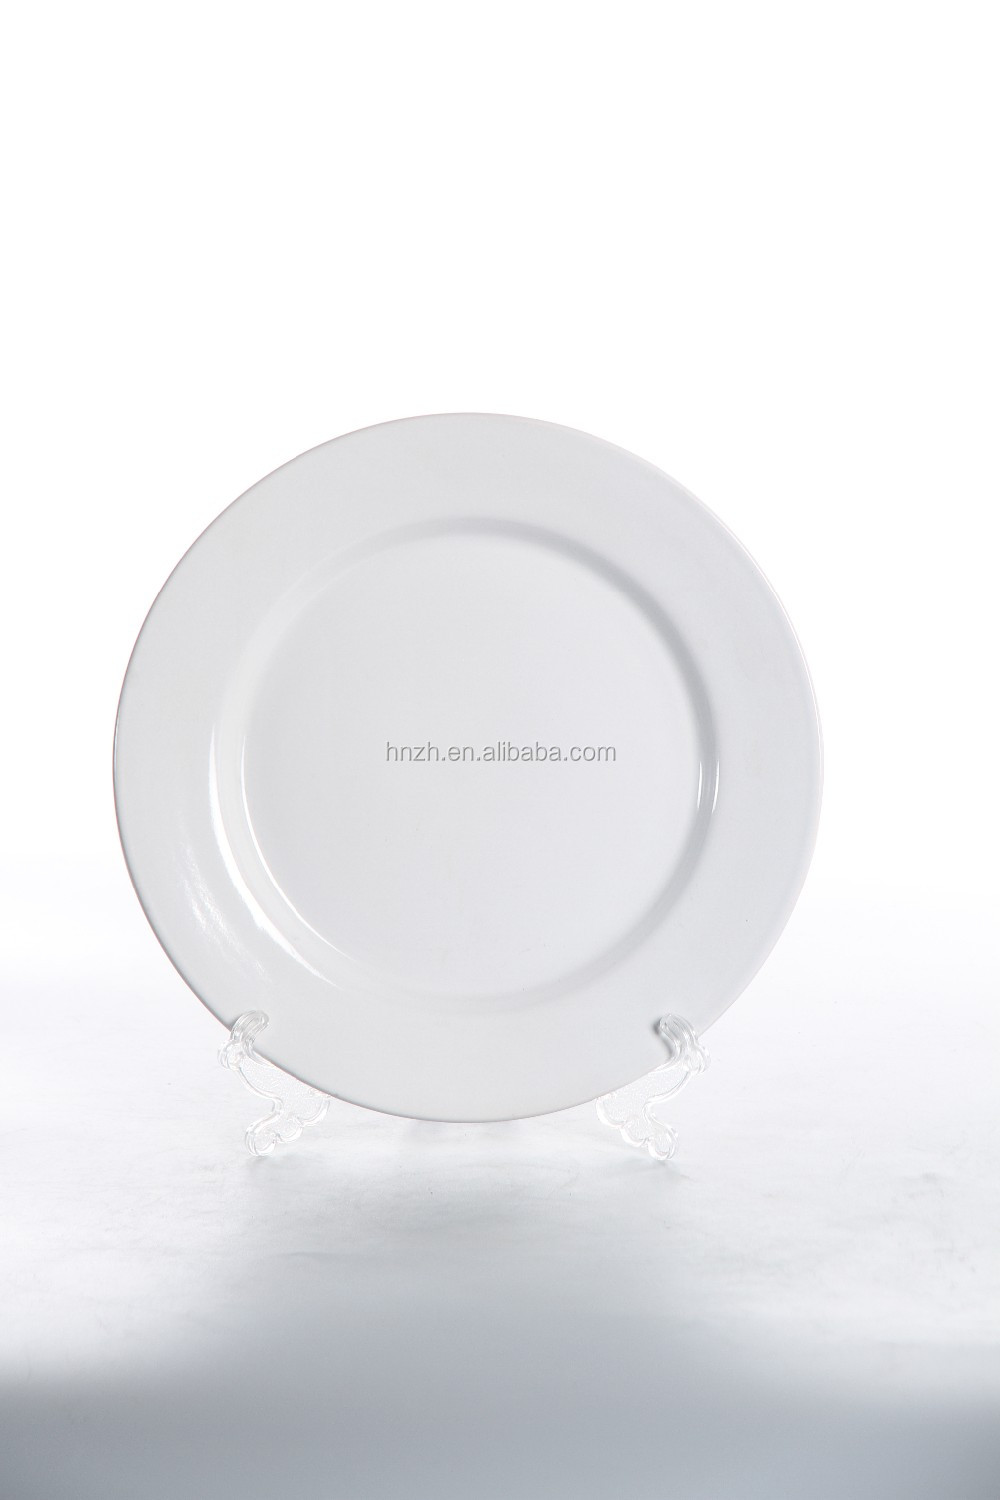 2016 hotsale white porcelain dinner plates for wedding